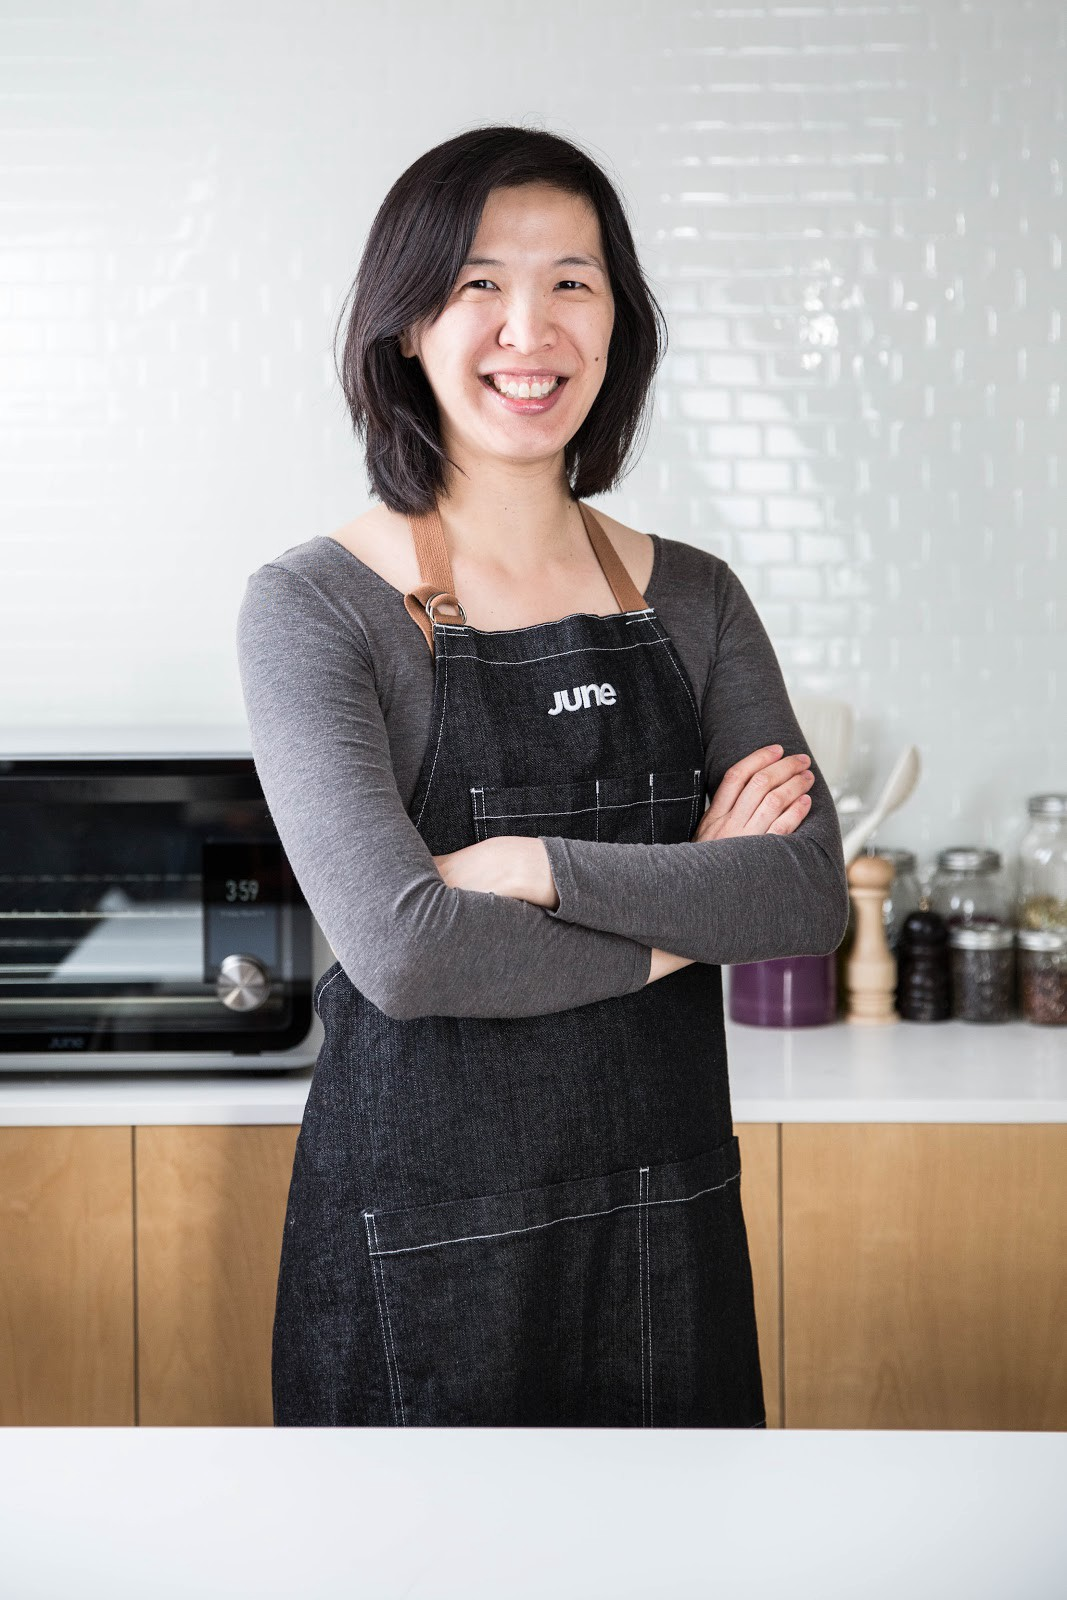 Careers In Food Culinary Content Manager By Sf Cooking School Sf Cooking Medium